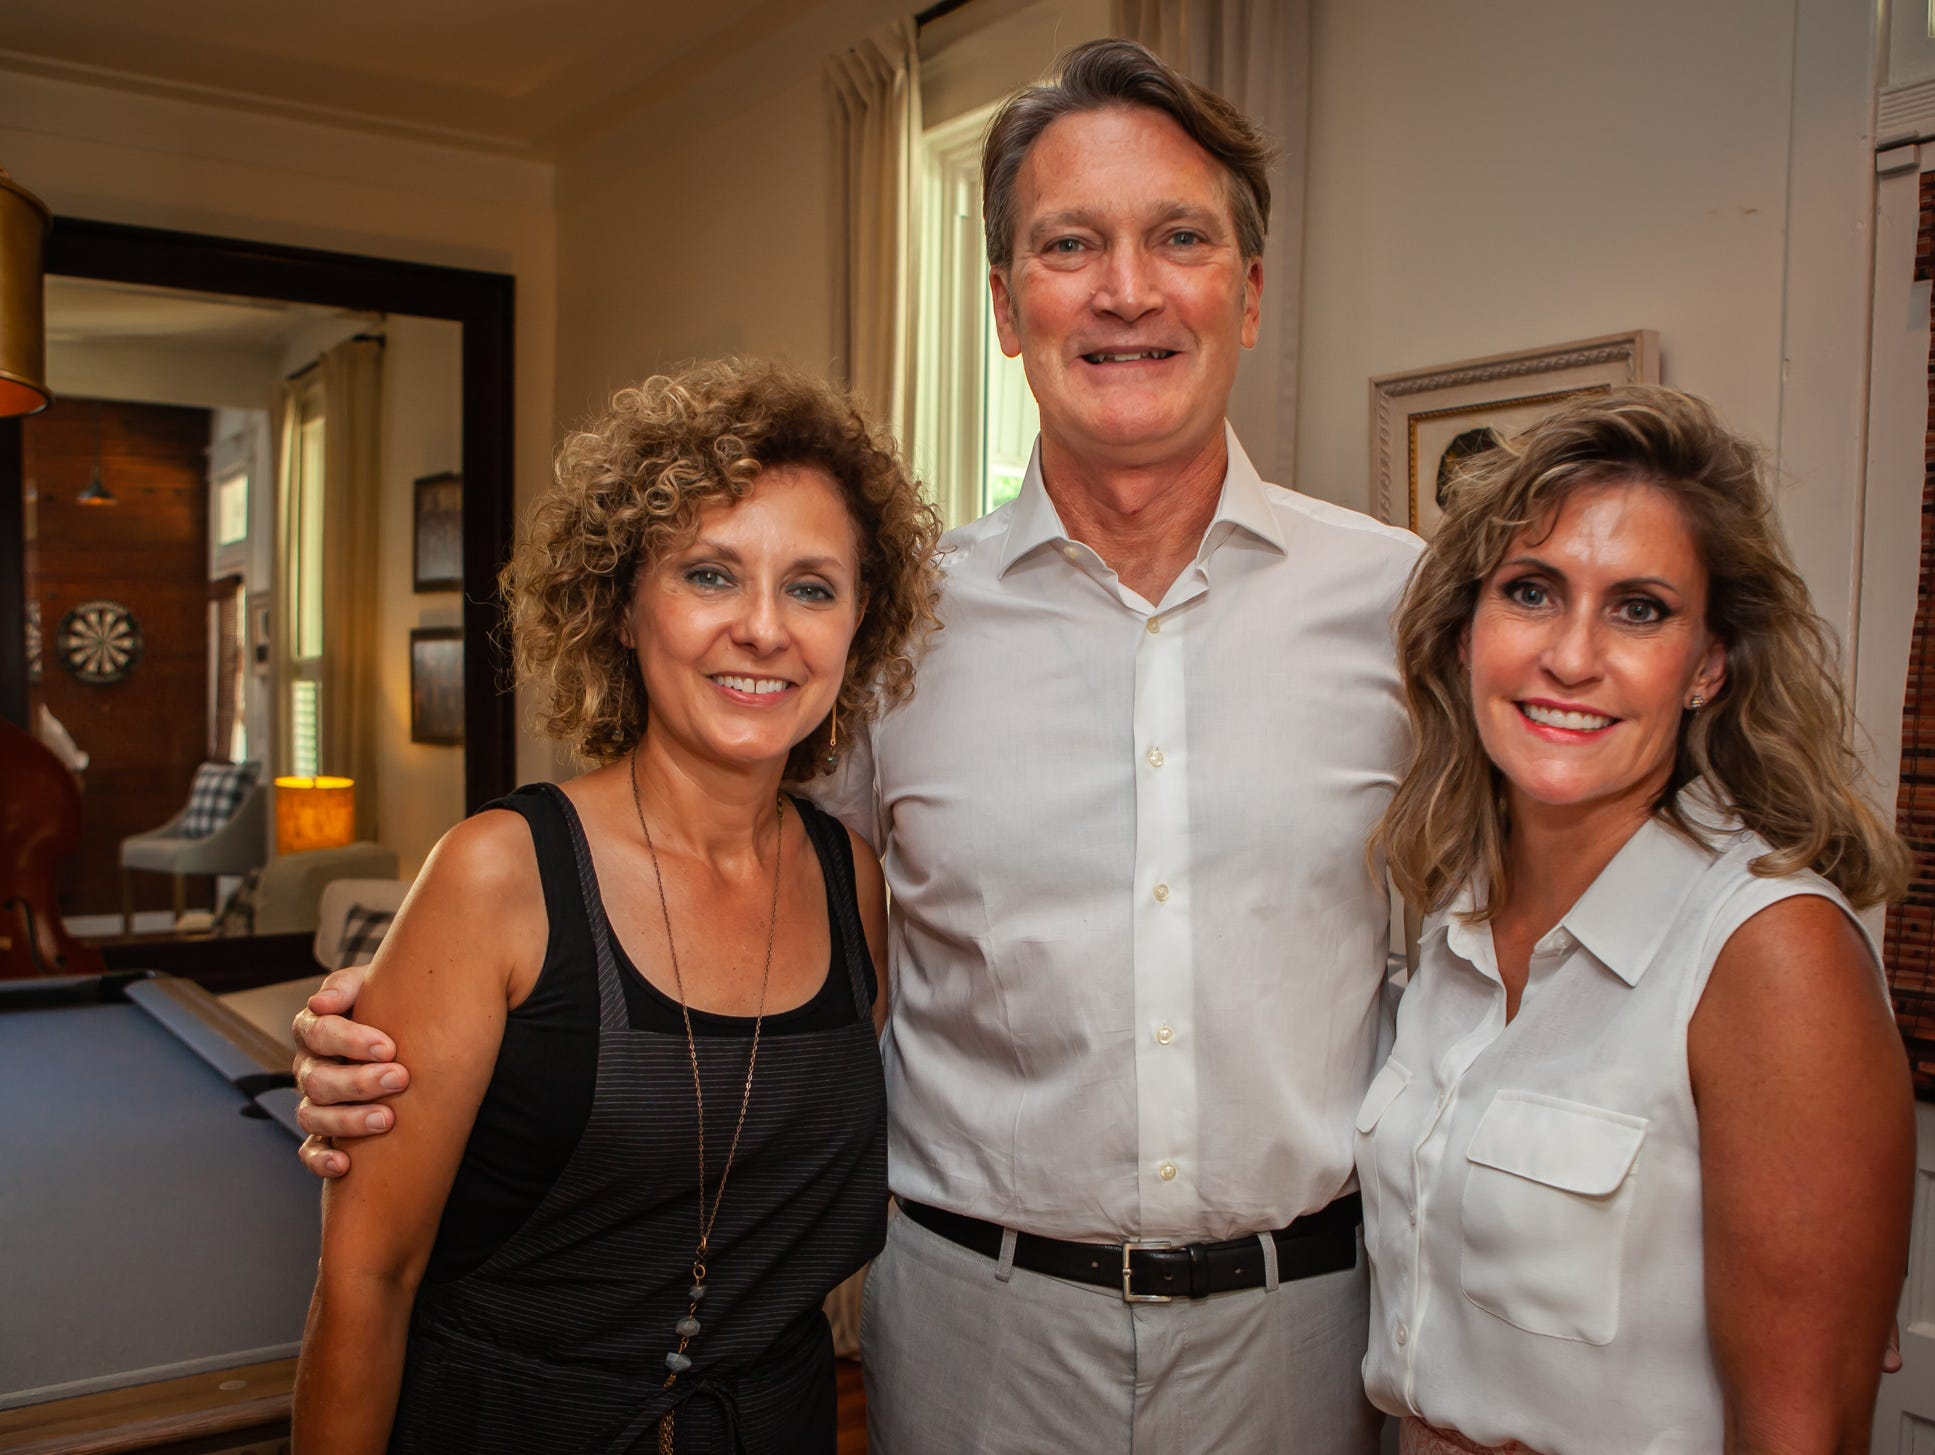 Amy & Rick Cottle with Ginny Togrye at An Evening on Lytle, hosted by Main Street Murfreesboro/Rutherford County. The Cottles opened their home for the event.